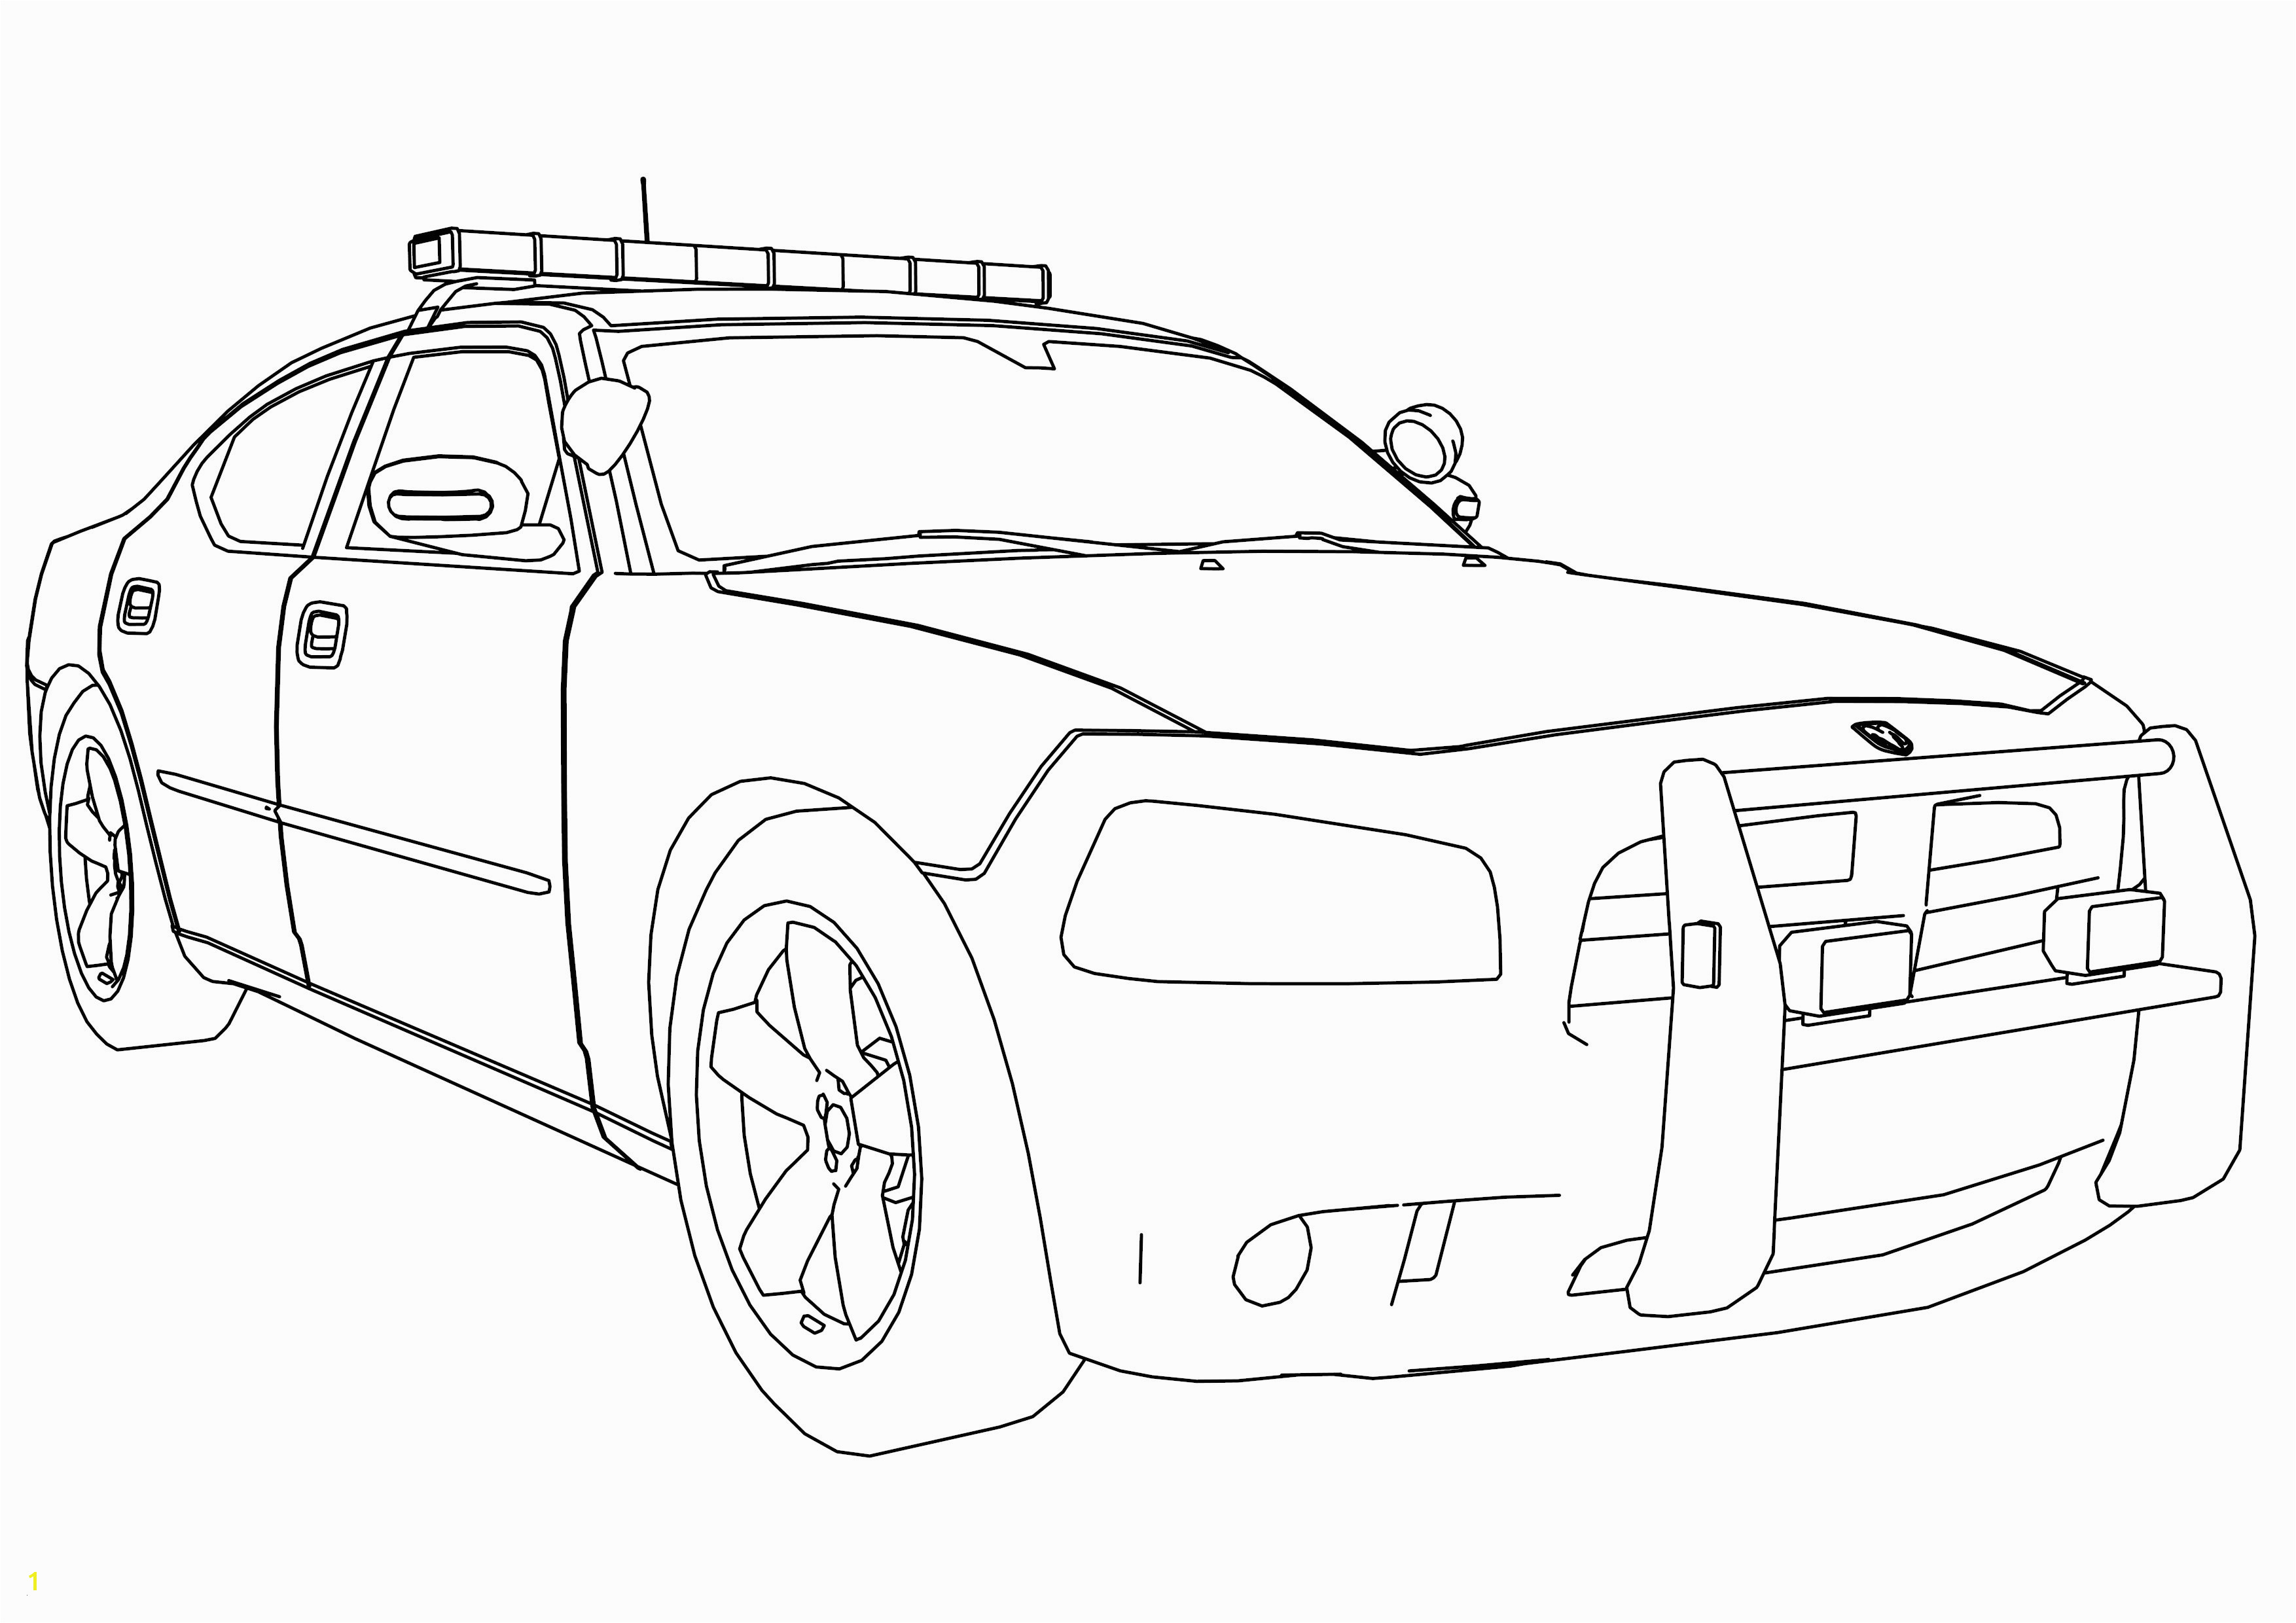 Swat Team Coloring Pages Police Car Coloring Pages Lovely Ausgezeichnet Police Auto